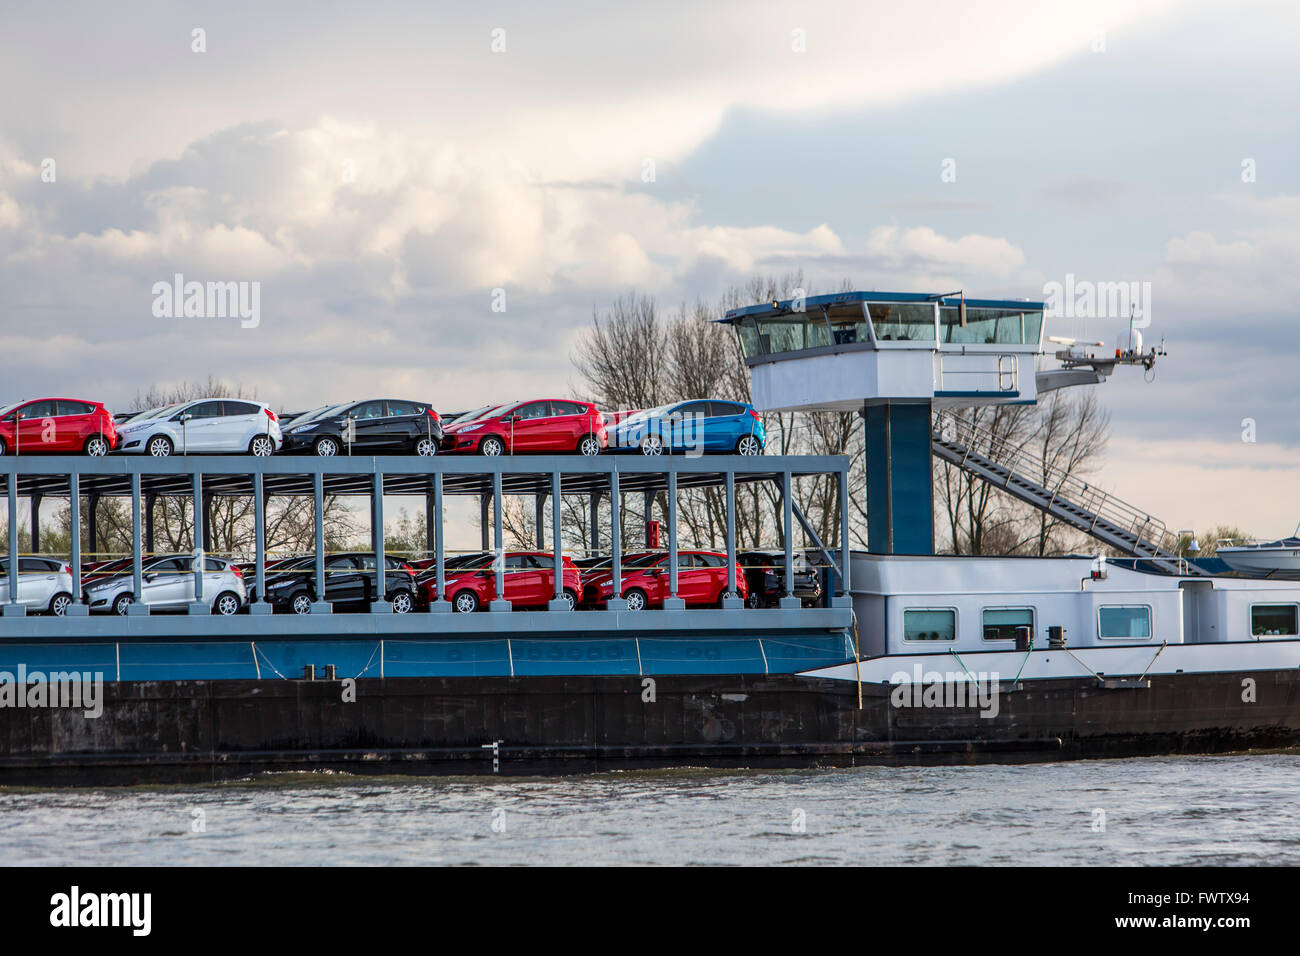 Cargo ship, car transporter on river Rhine, Duisburg, Germany - Stock Image